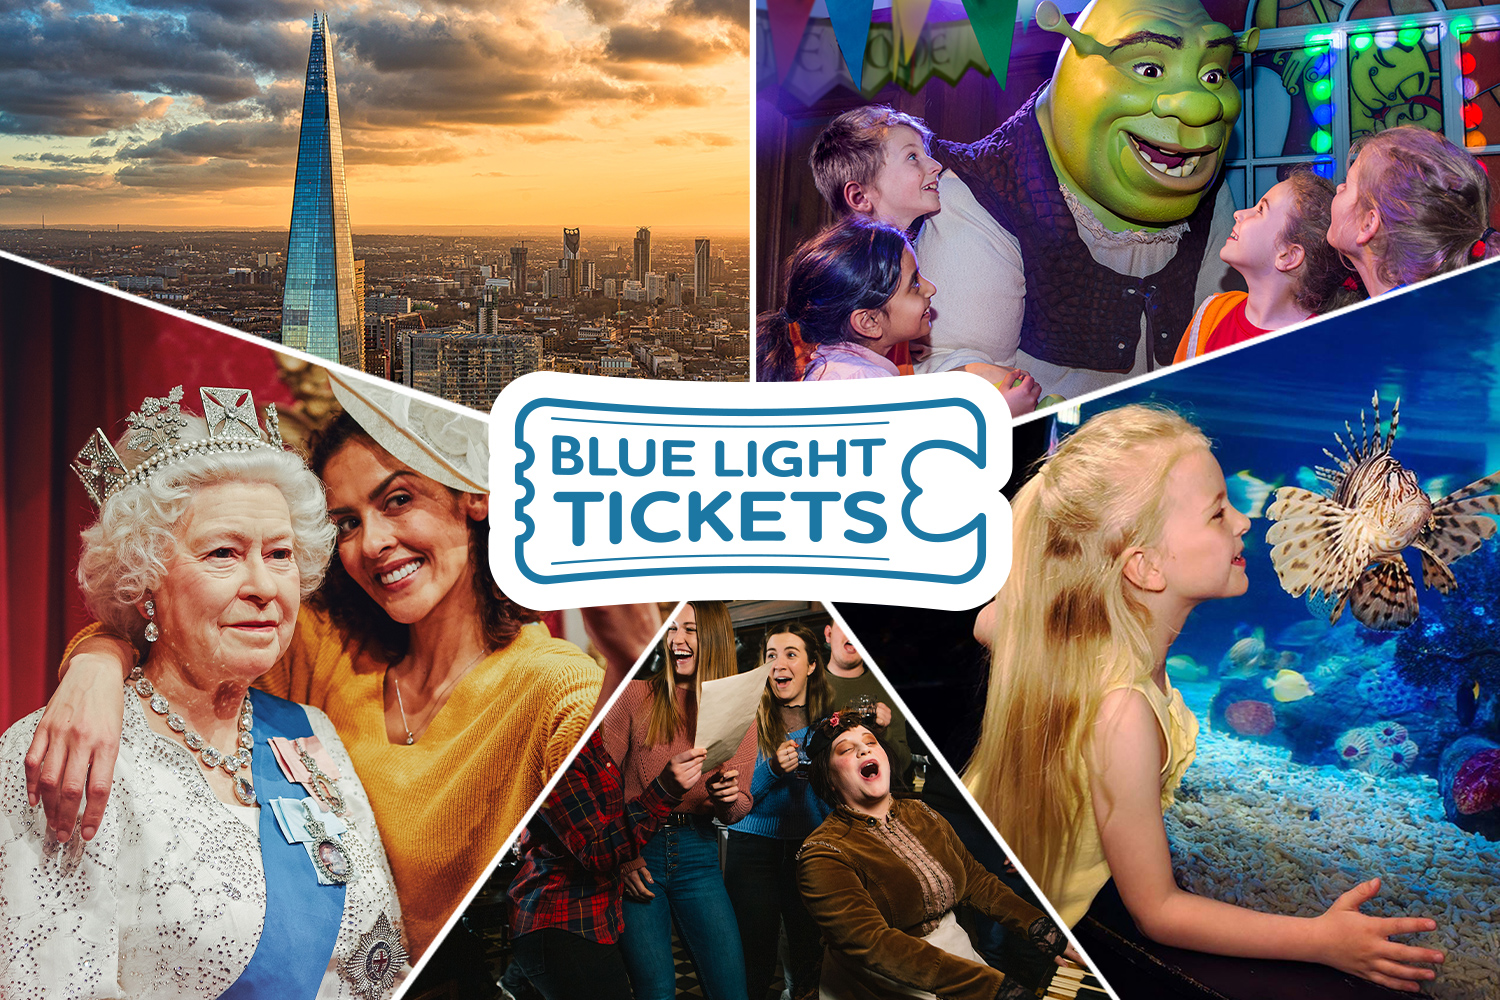 Exclusive free entry at London attractions with Blue Light Tickets!